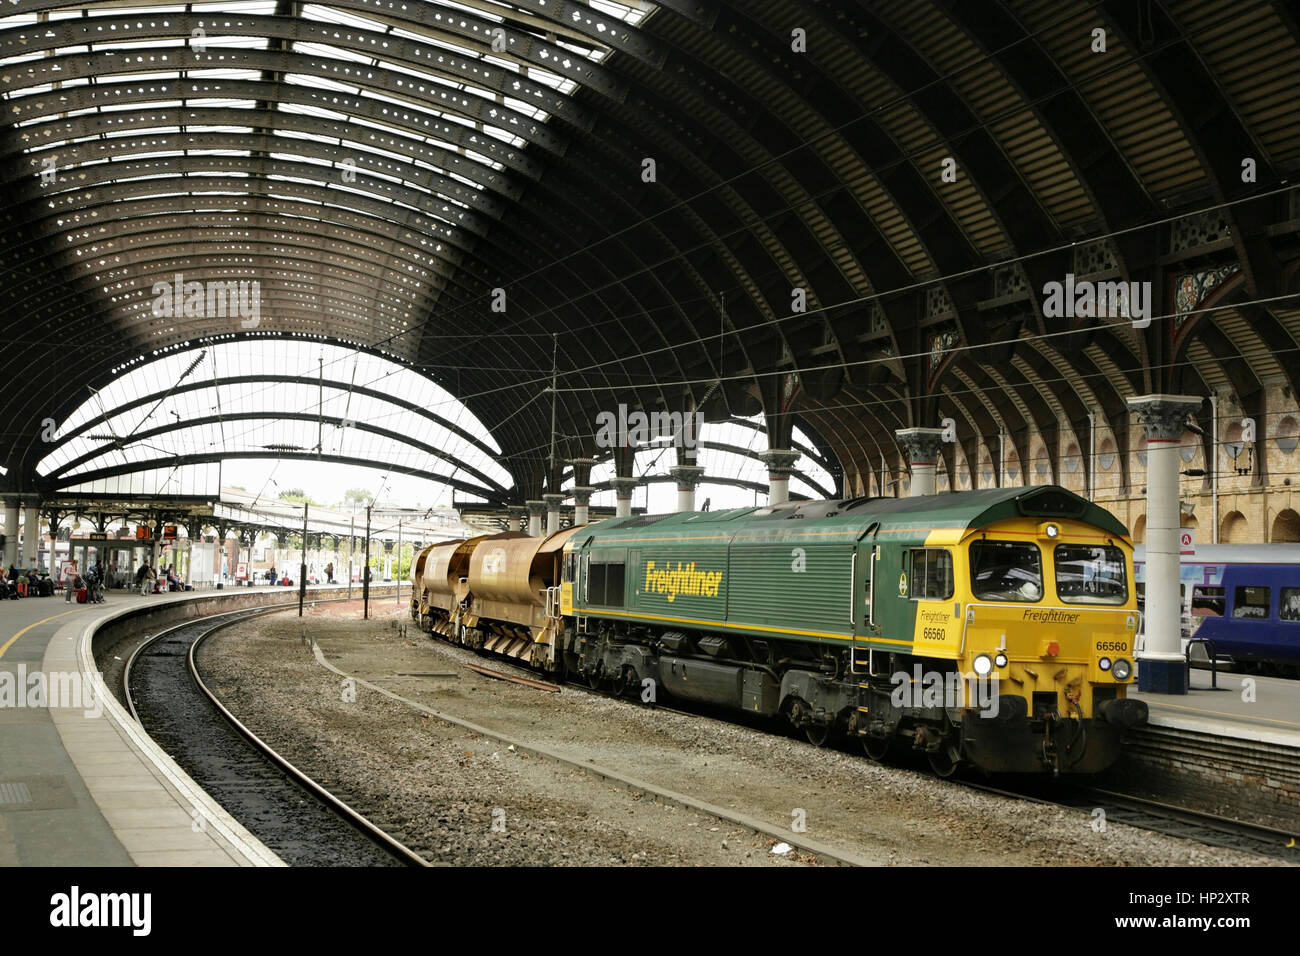 Freightliner Class 66 diesel loco with train of Network Rail ballast wagons at York station, UK - Stock Image